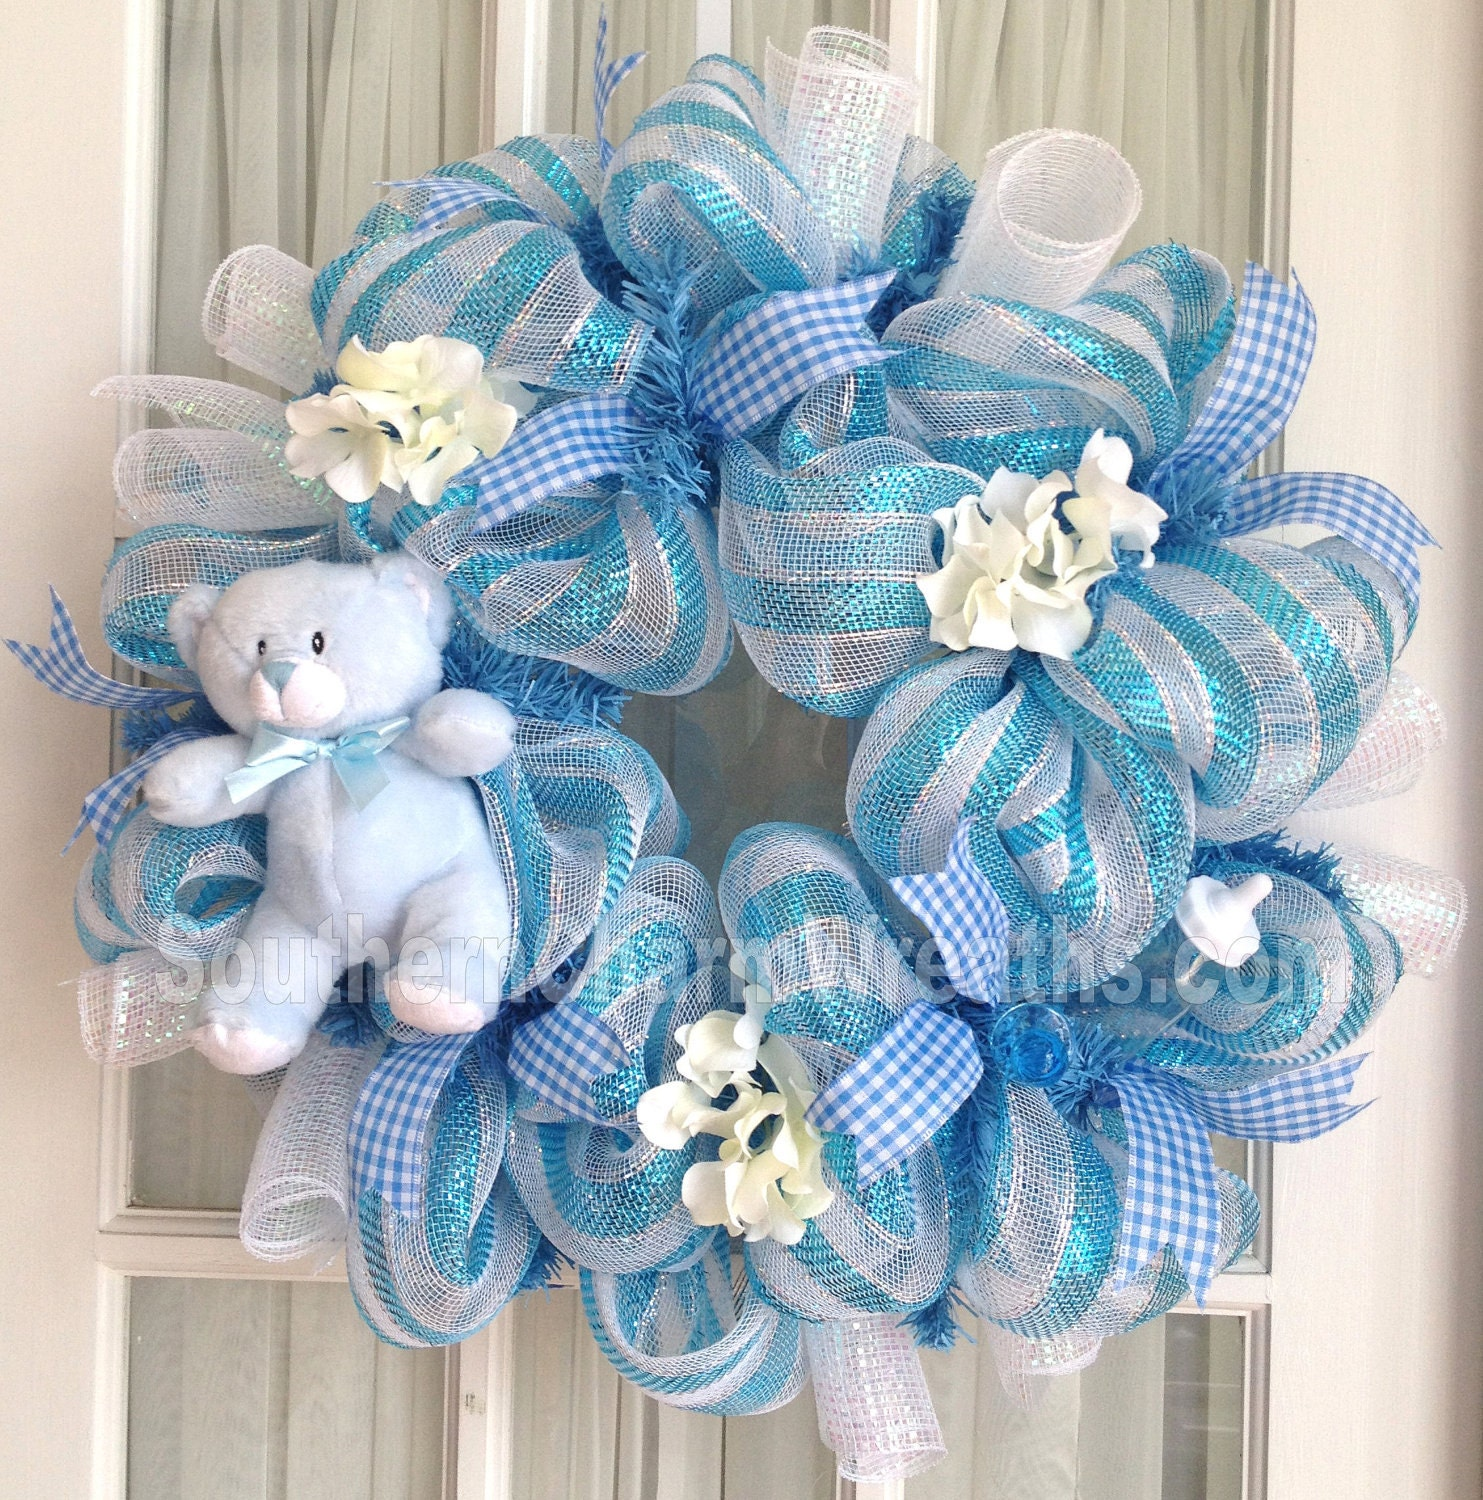 Deco Mesh Baby Boy Wreath Blue White Baby Door Hanger Baby